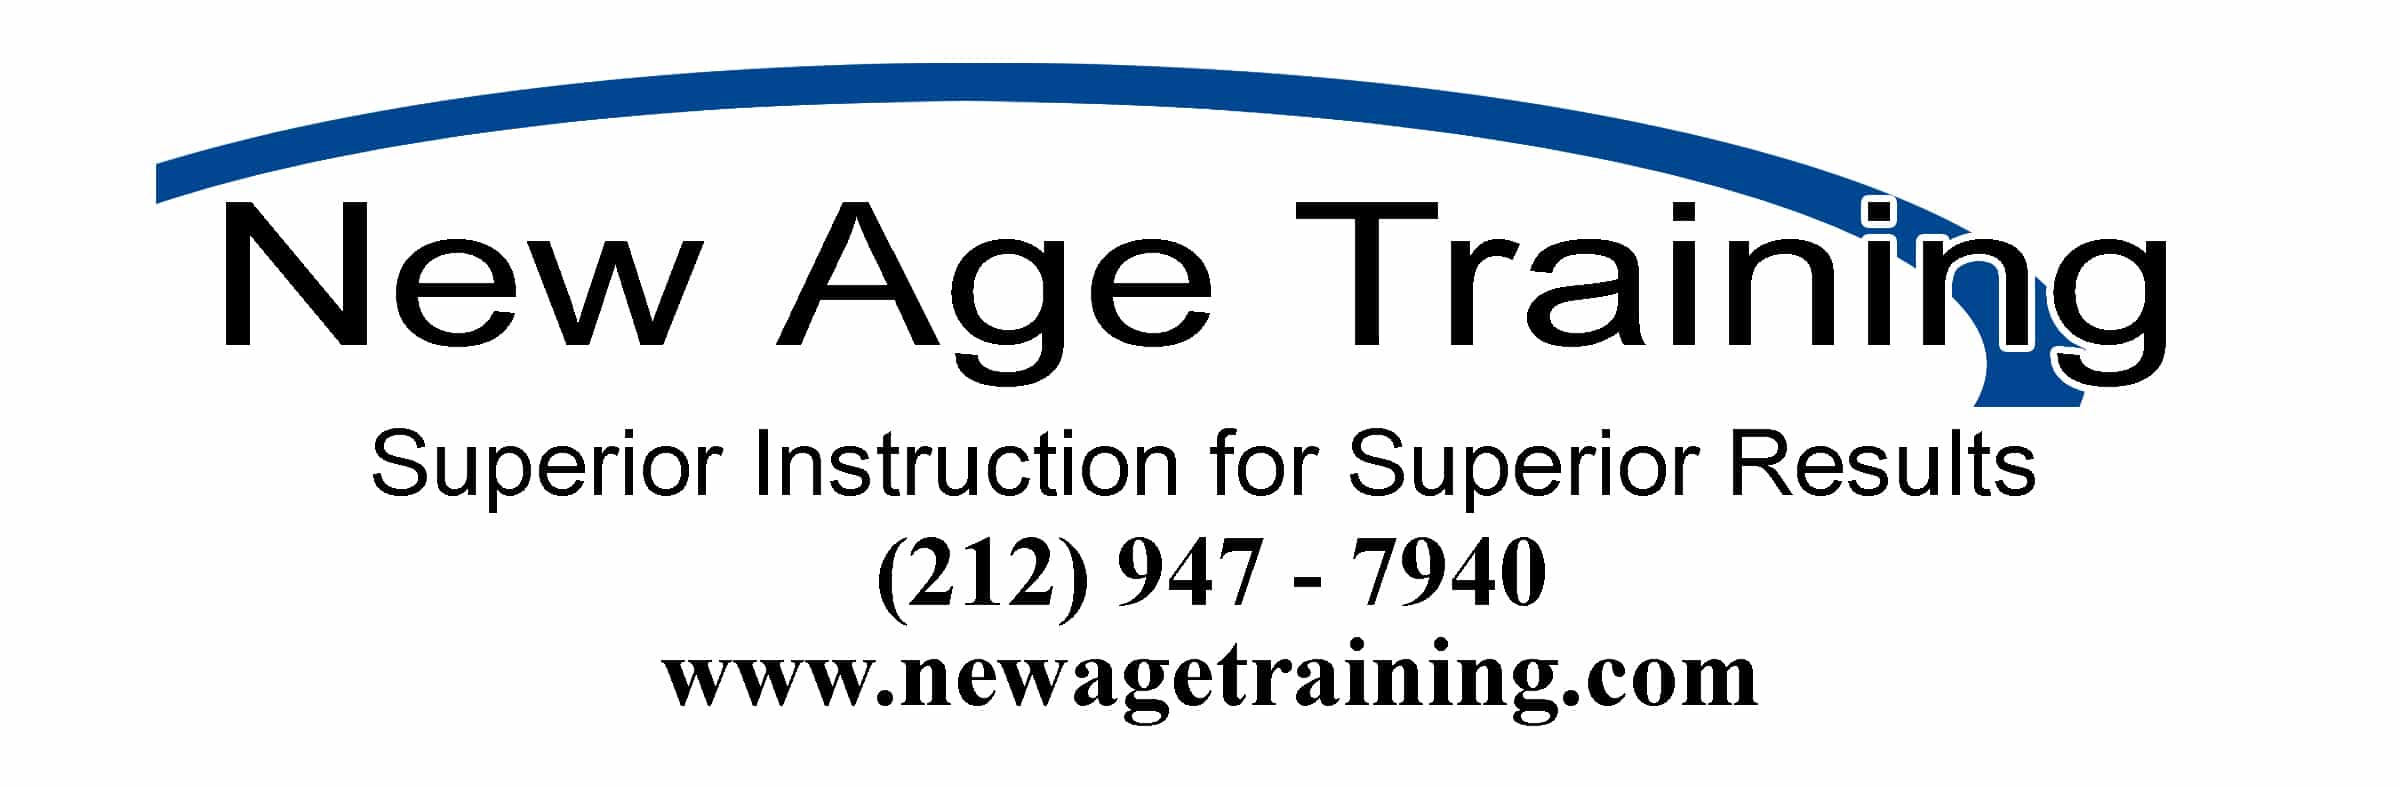 Healthcare Training Courses In New York Nyc New Age Training